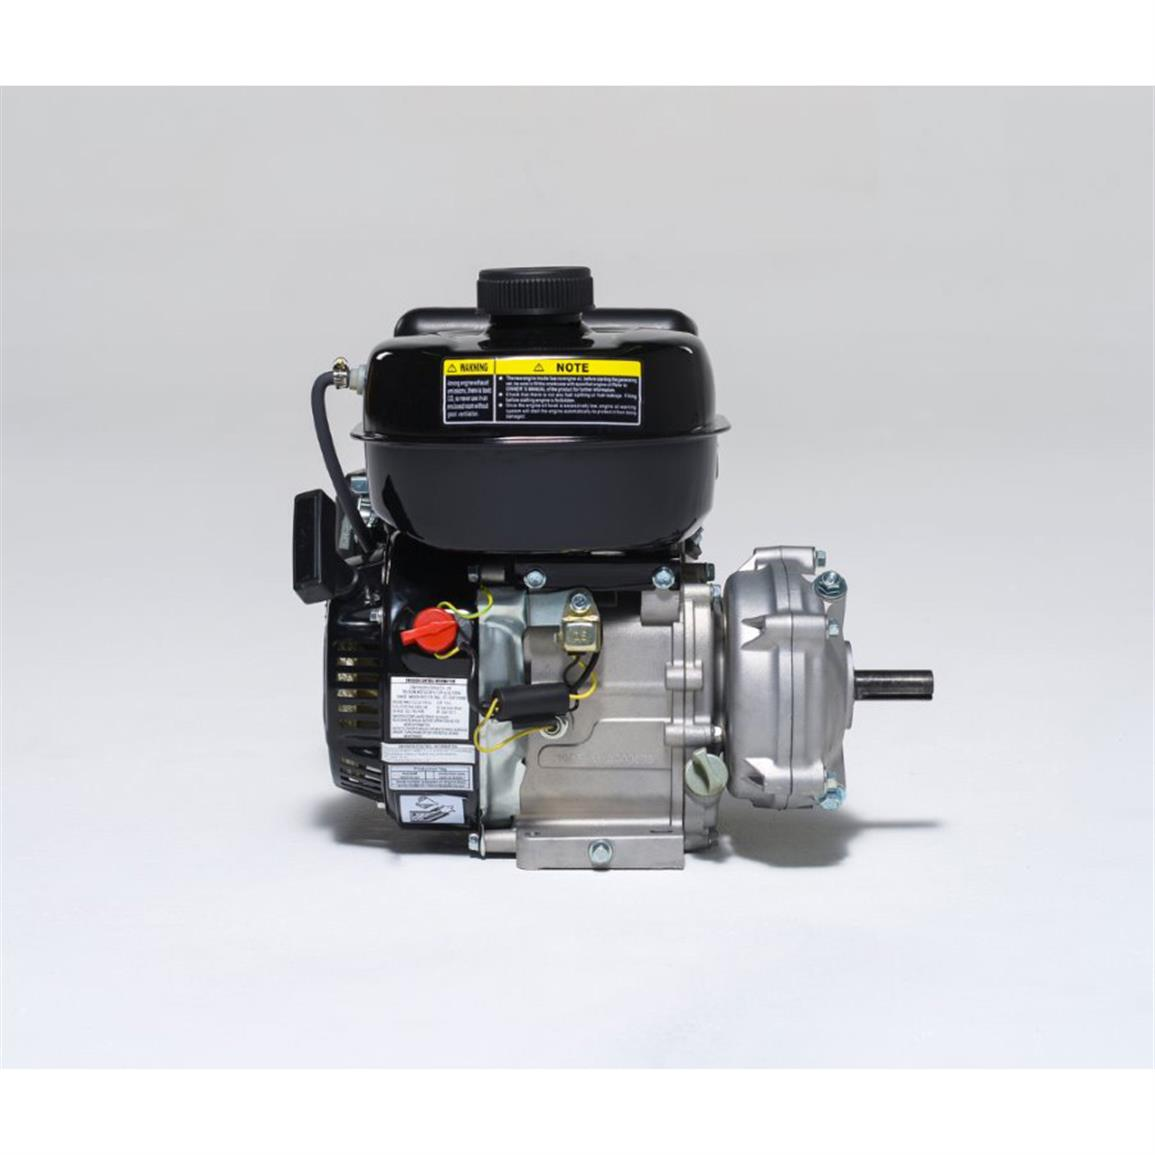 LIFAN 4 hp Gas Engine with 6:1 Gear Reduction